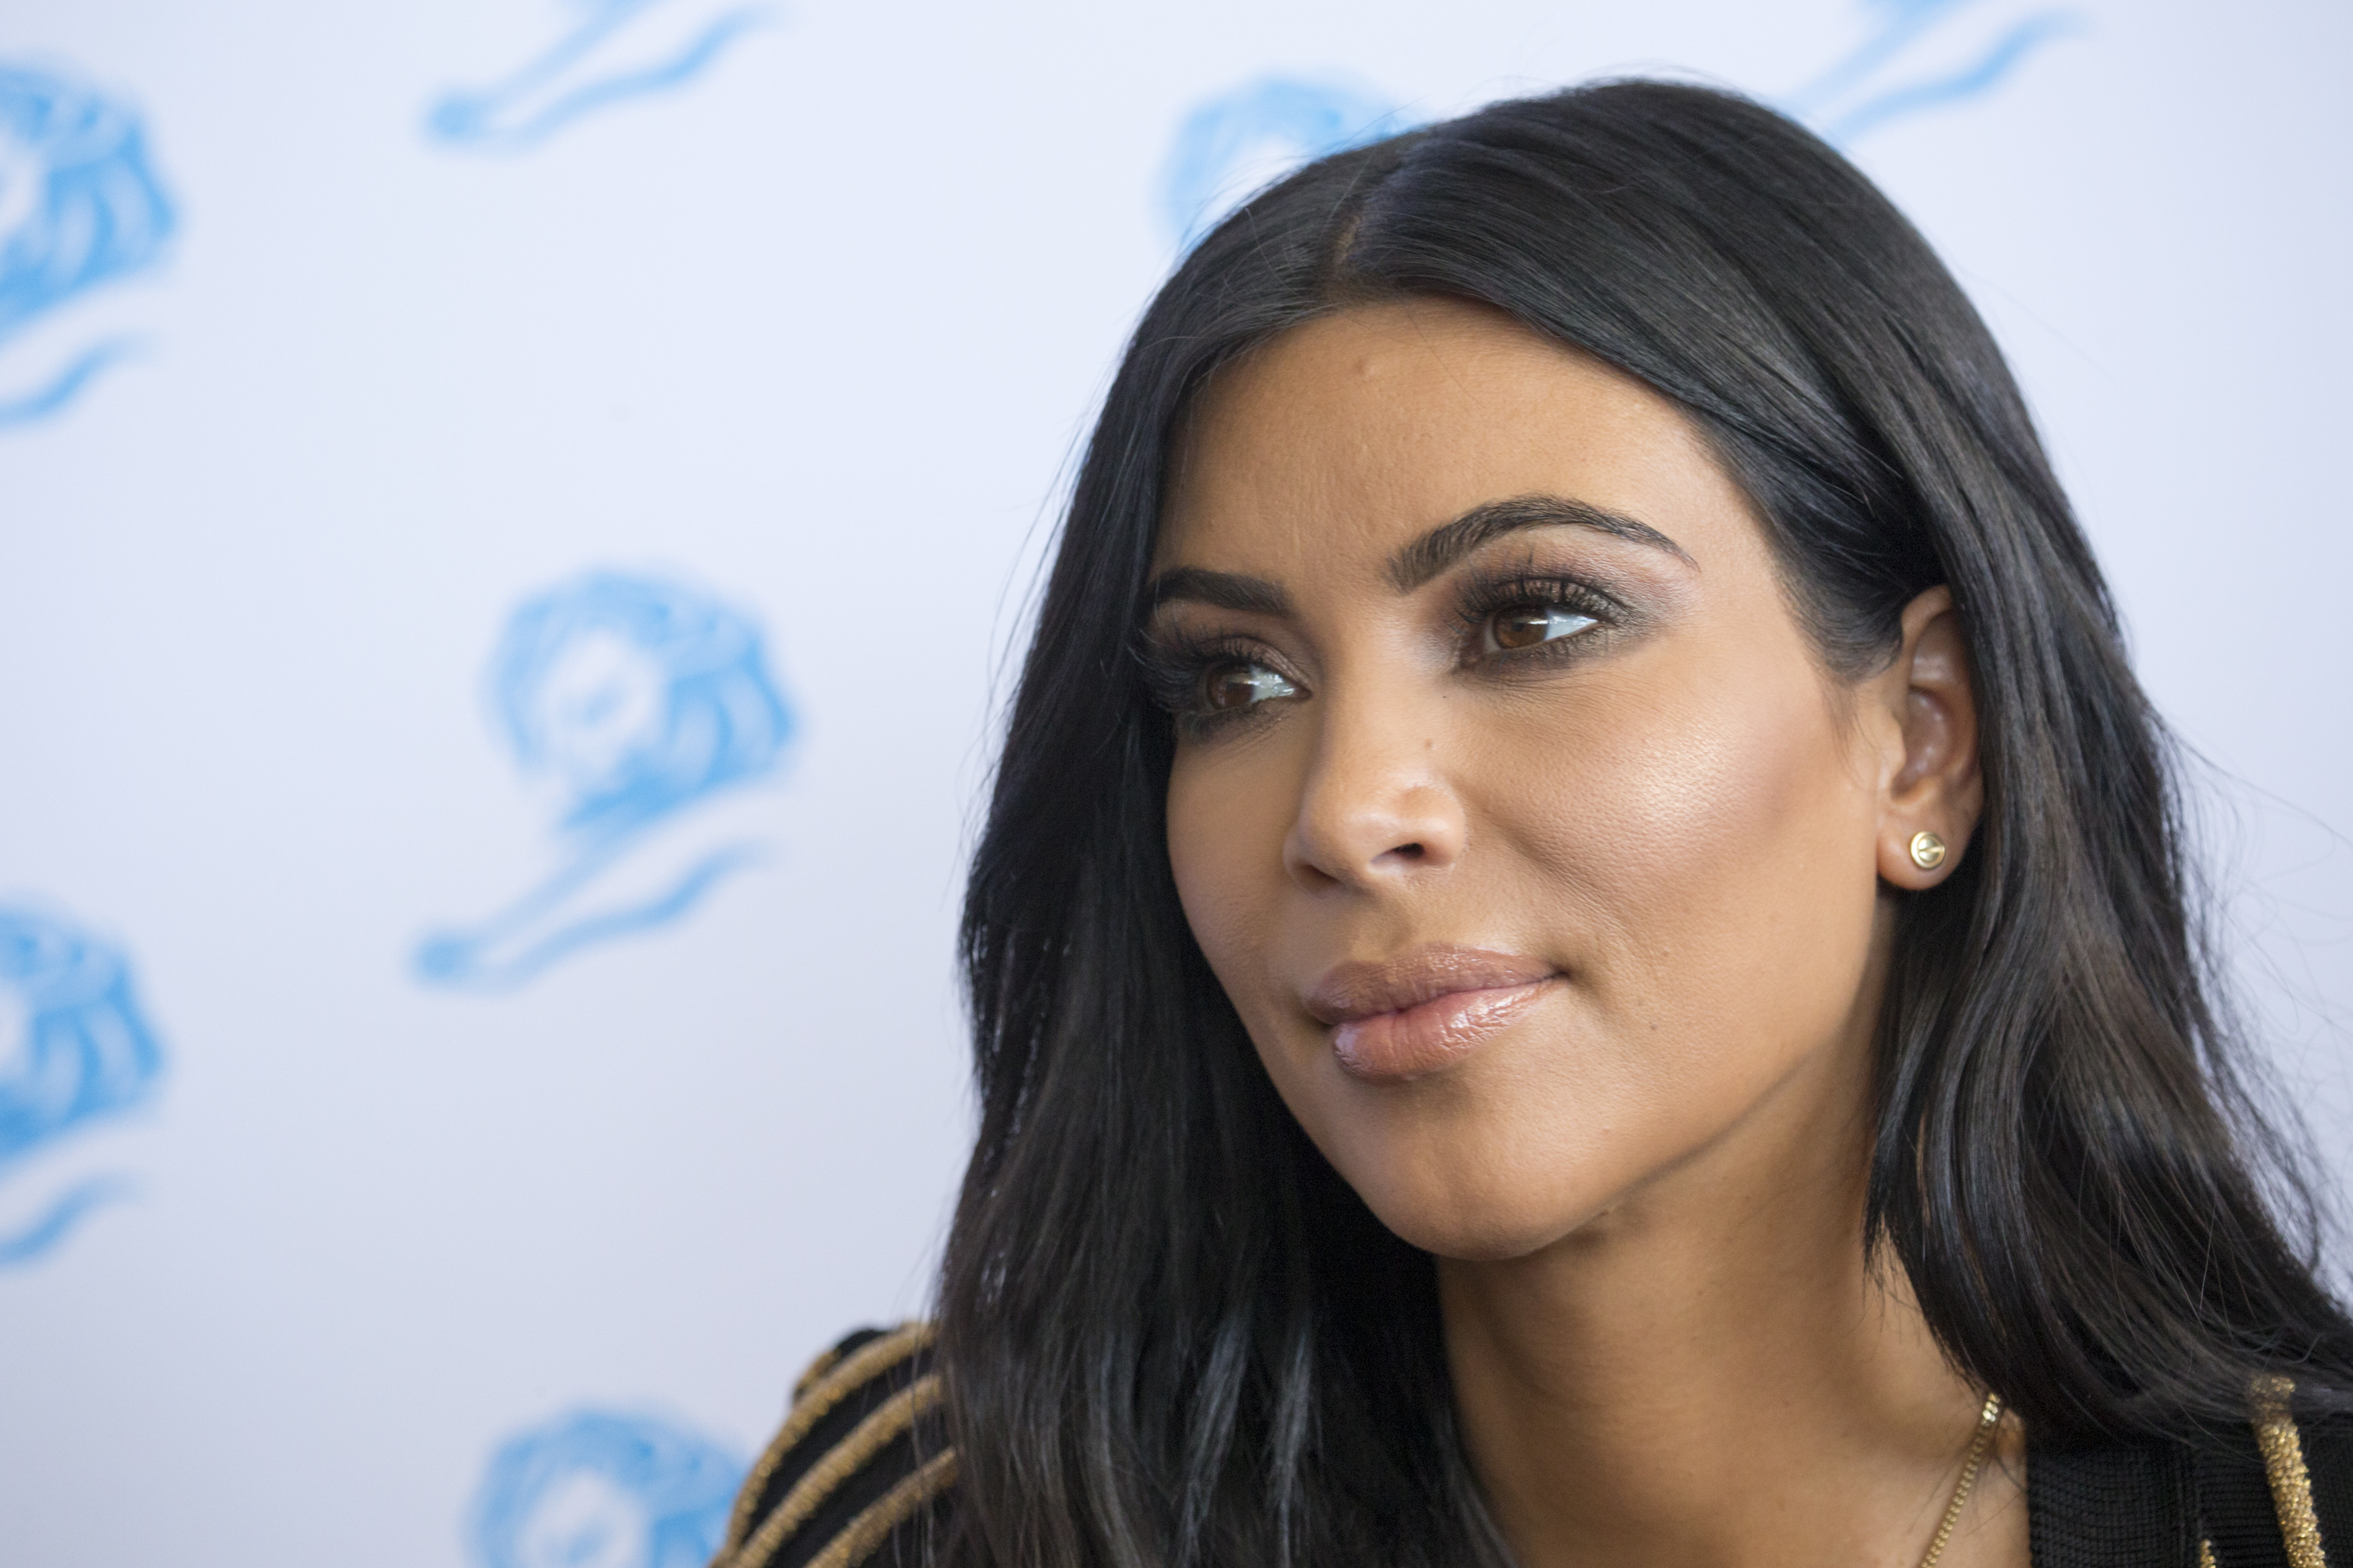 Kim Kardashian West at the Cannes Lions International Festival of Creativity in Cannes, France on June 24, 2015.